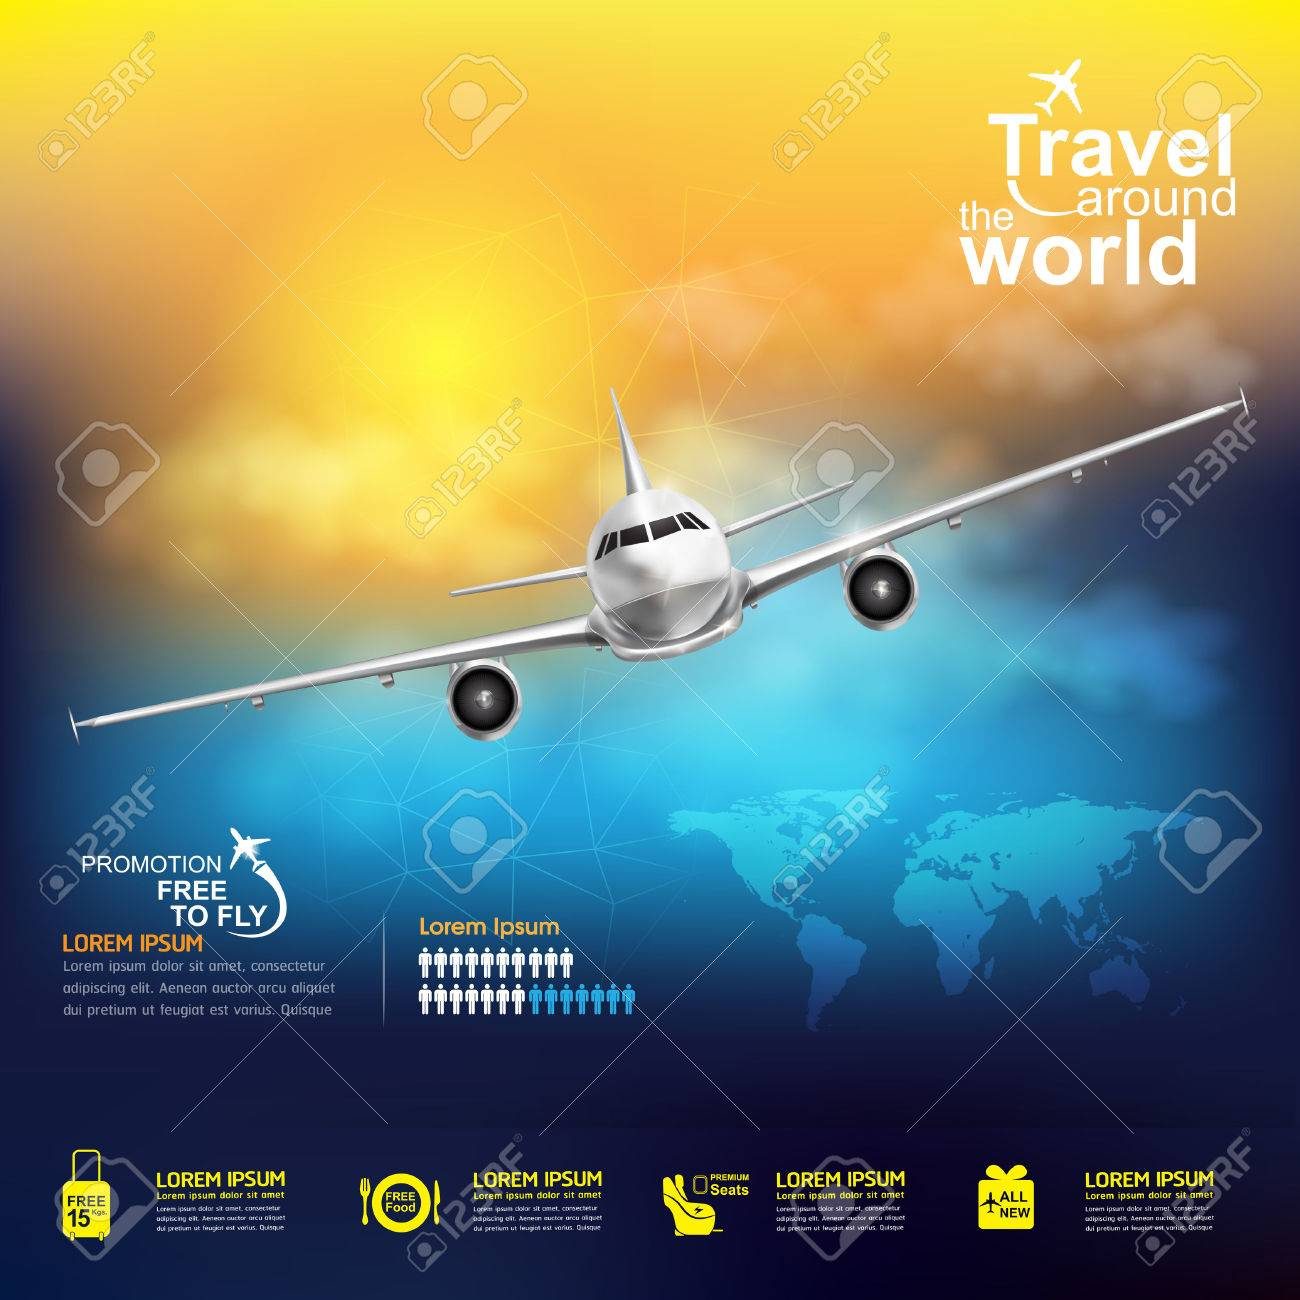 Airline Vector Concept Travel around the World Stock Vector - 48767438